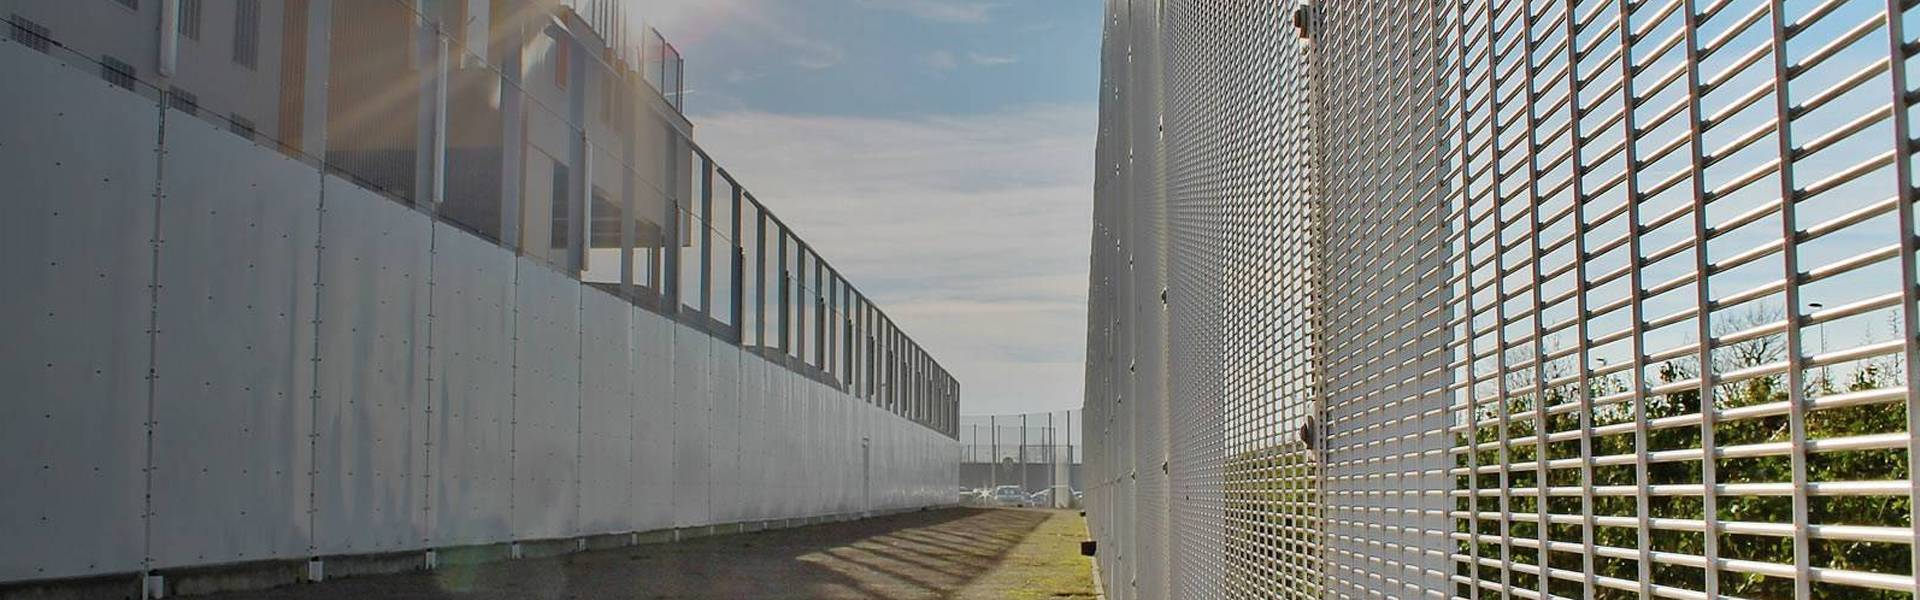 Anti climb fence panel installed for the maximum protection of the plant.